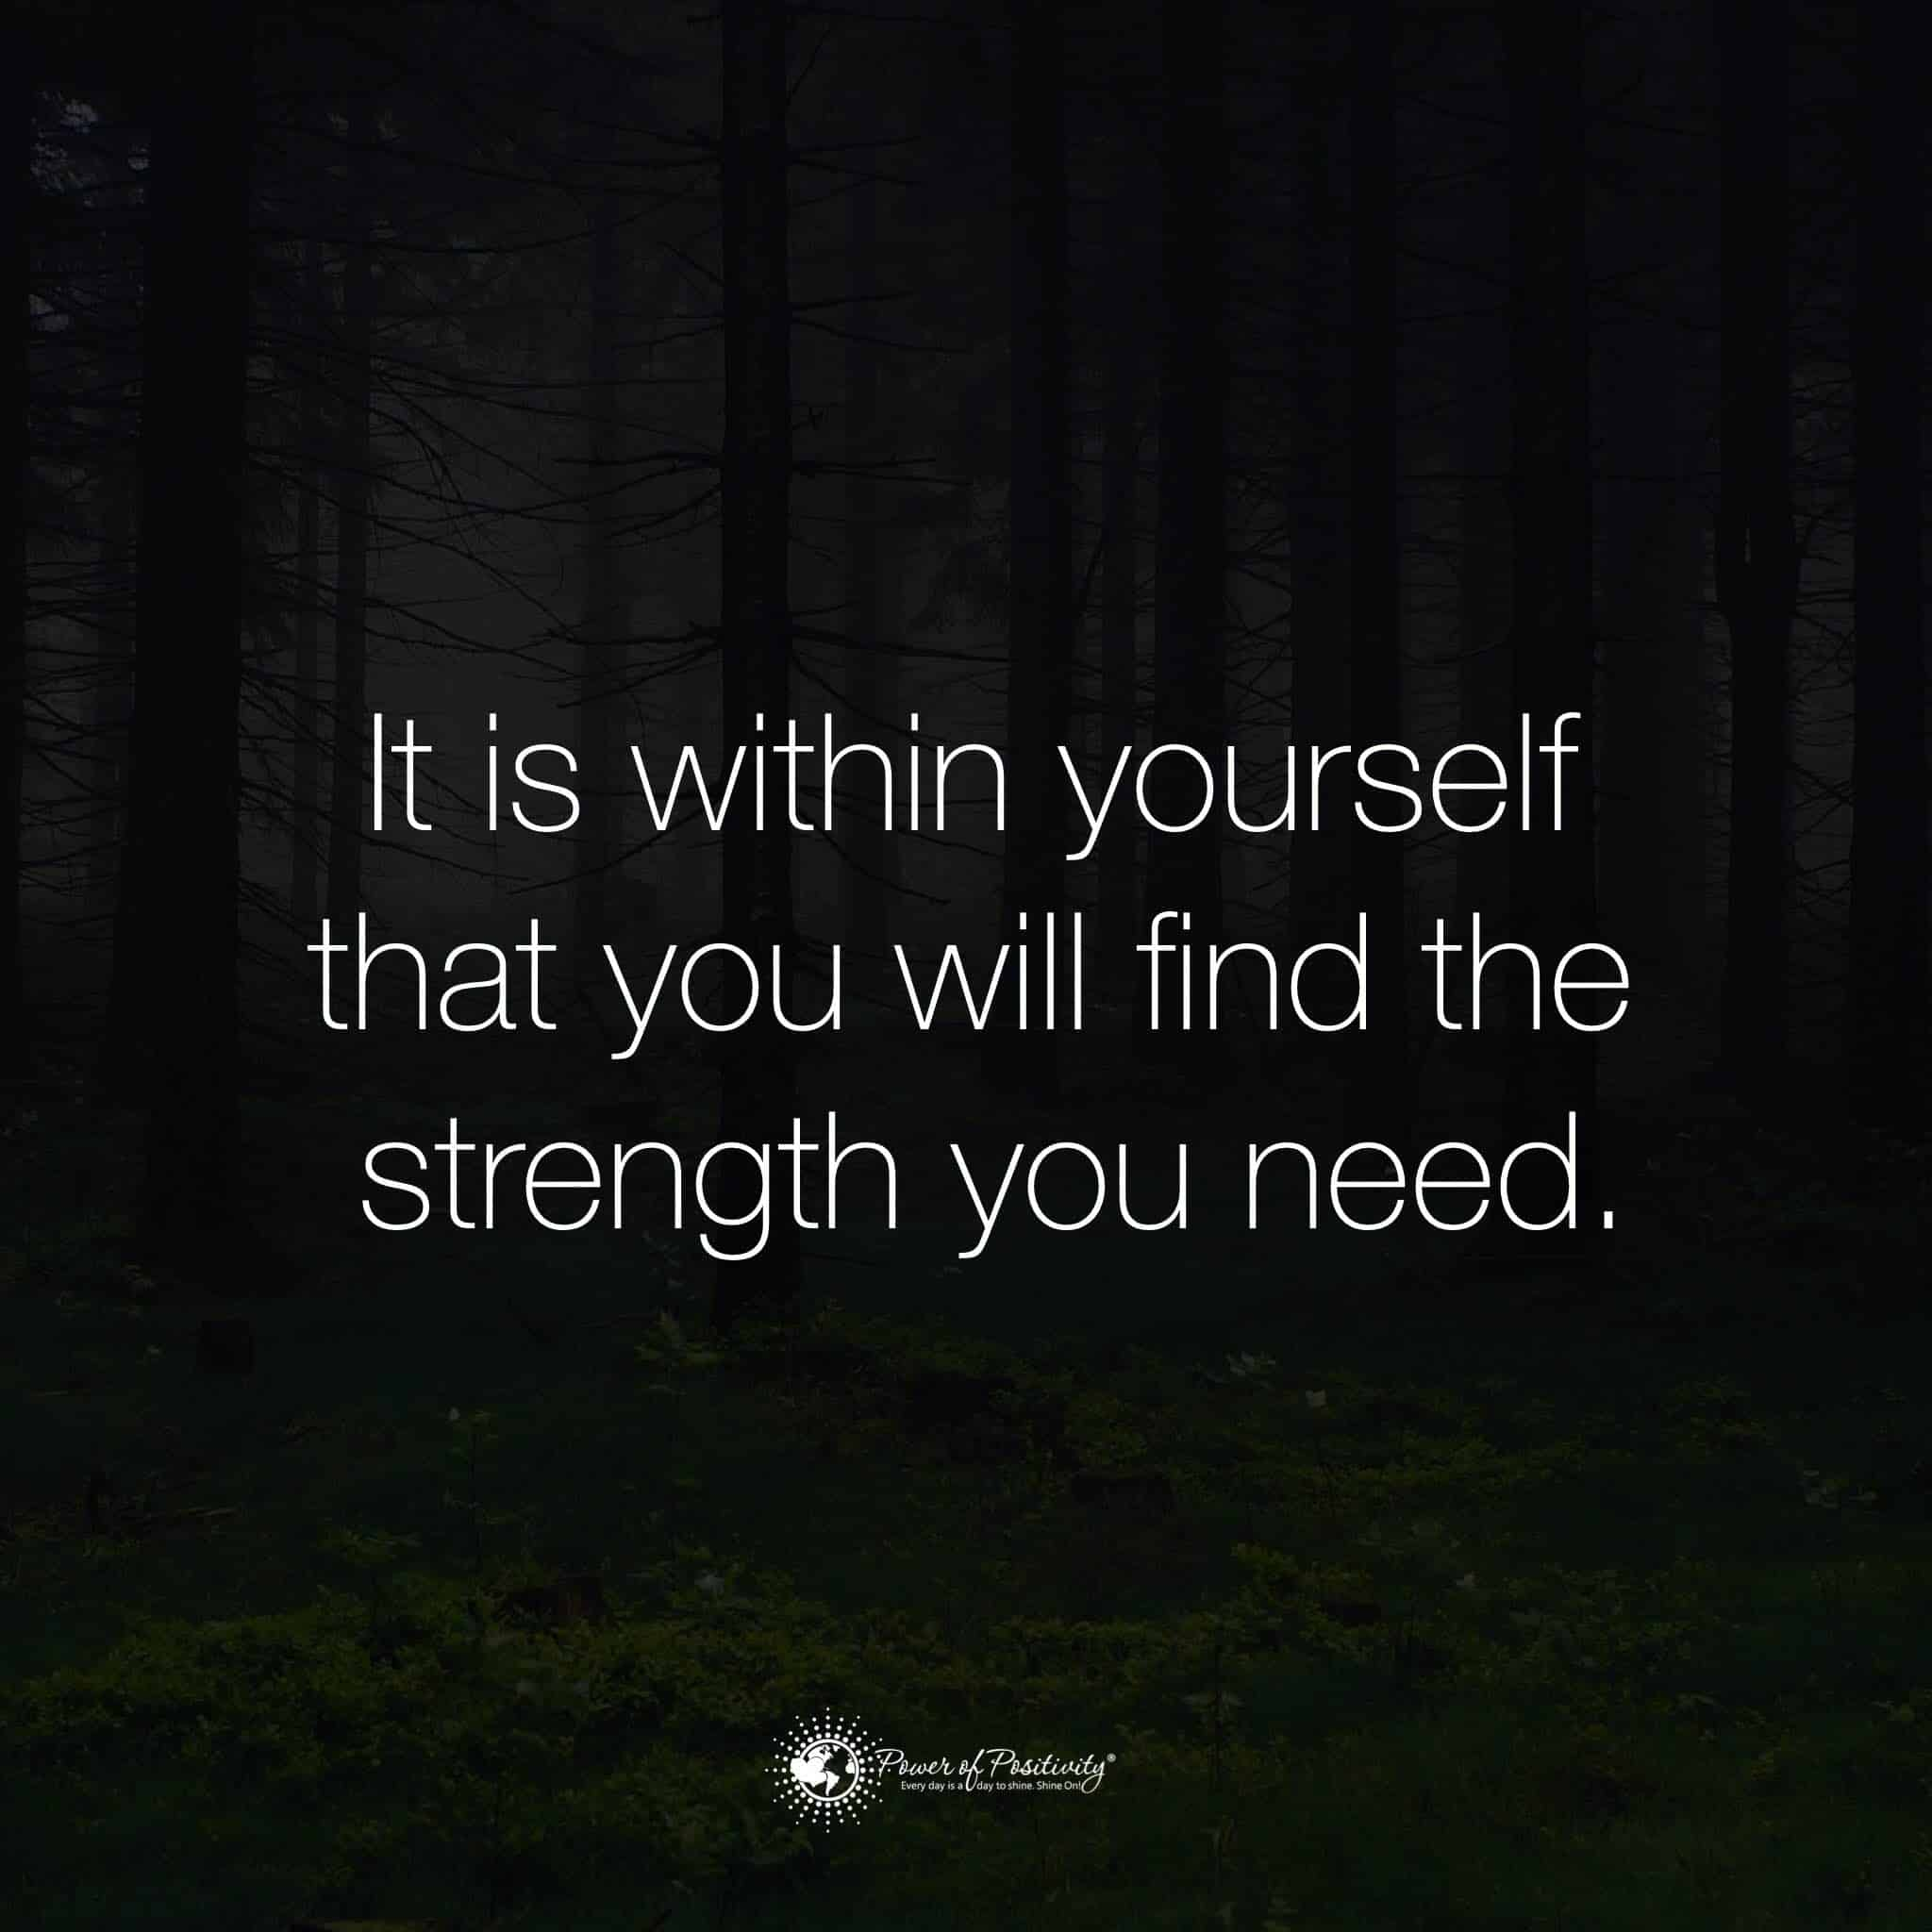 10 Ways To Build Inner Strength